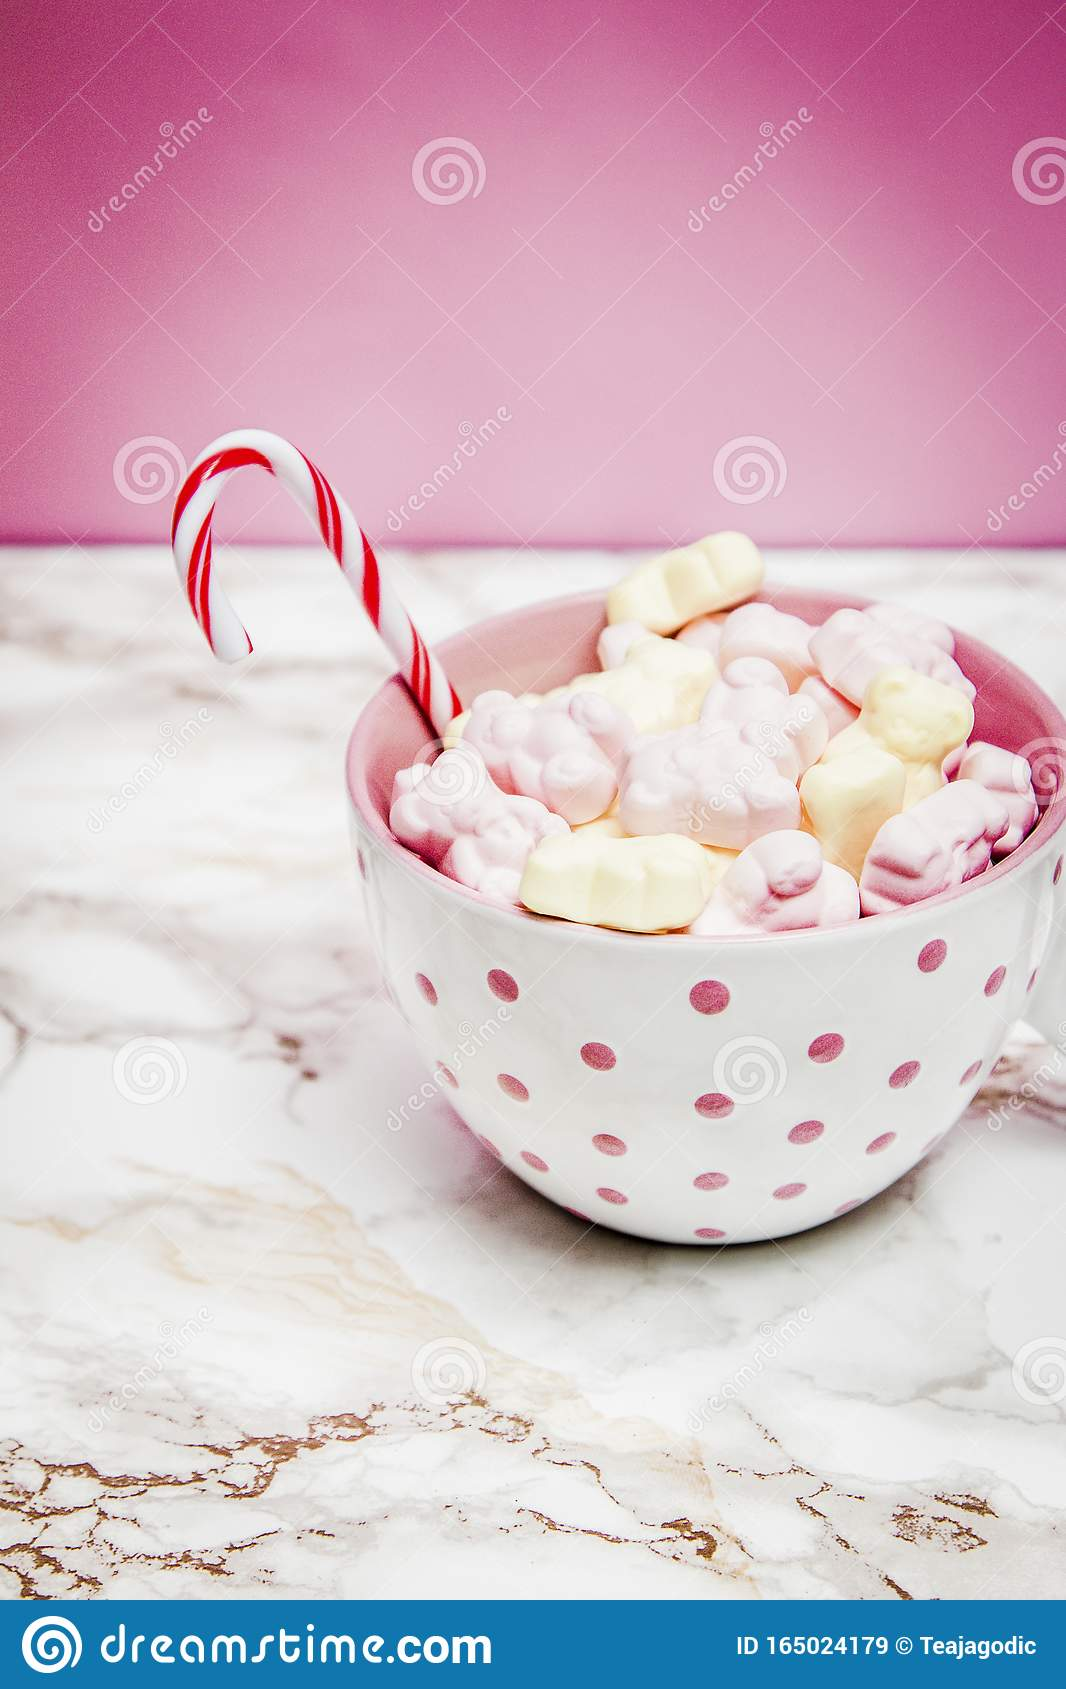 White Pink Christmas Mug With Marshmallows Sugar Cane On A Cozy Sweaters And Pink Background Editorial Stock Image Image Of Marble Cinnamon 165024179